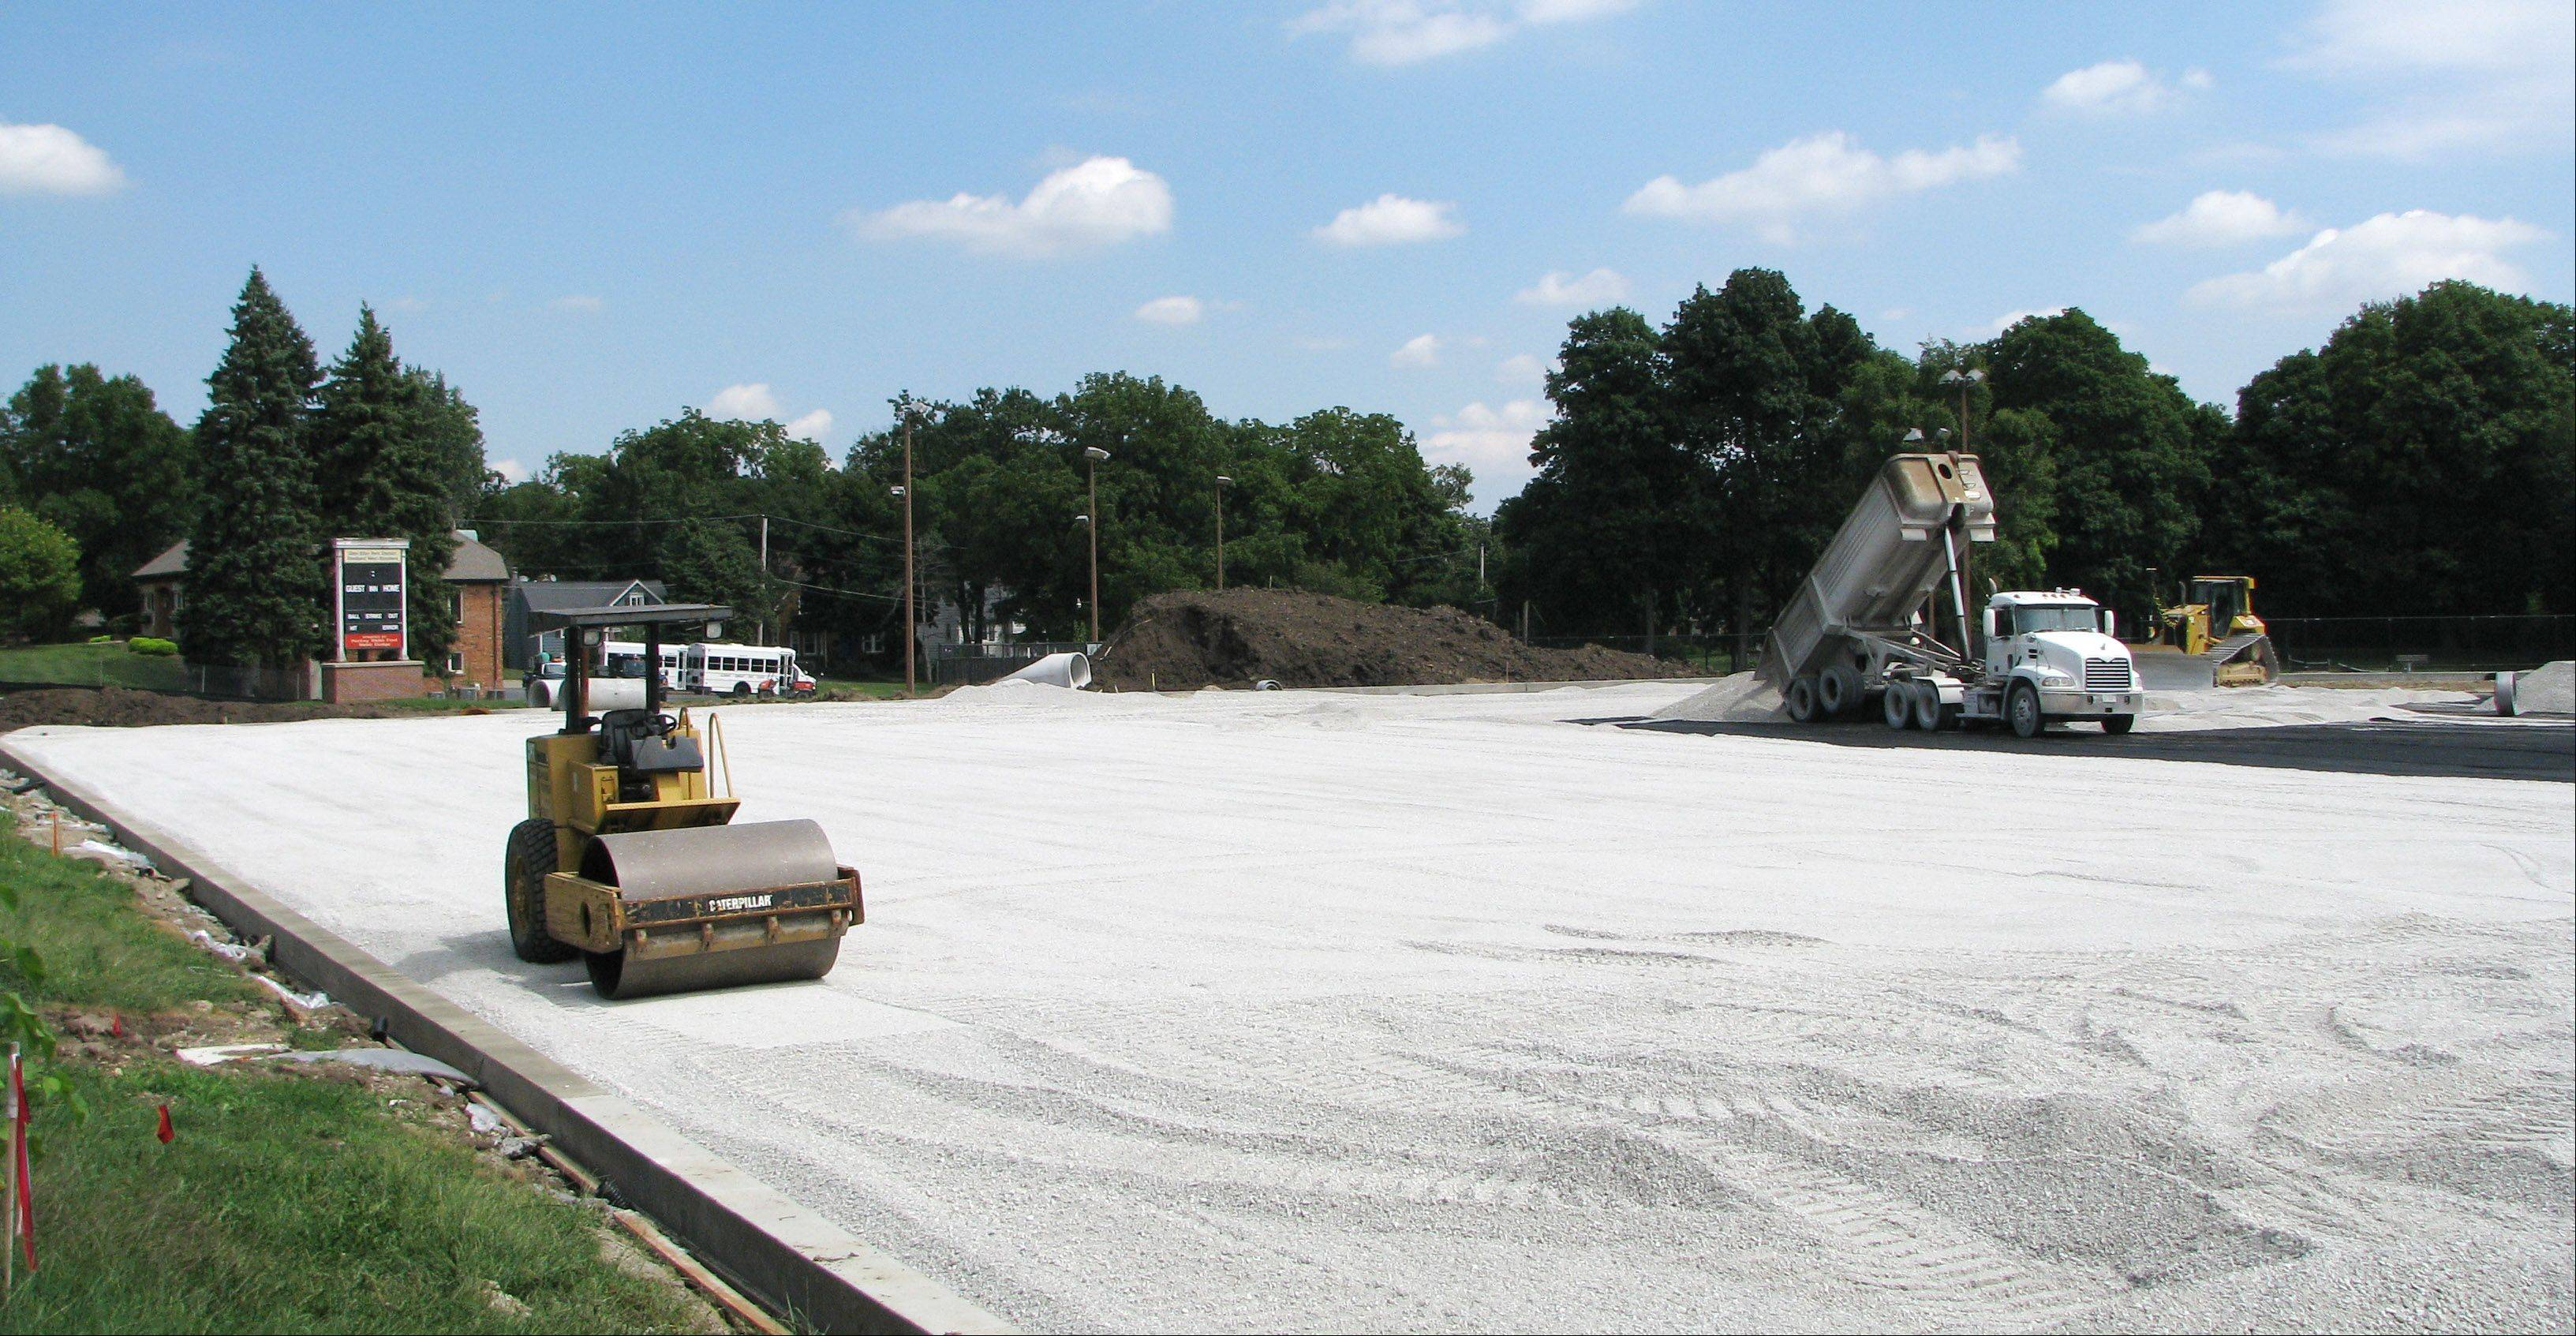 Artificial turf was installed at Memorial Field across from Glenbard West High School in 2010. School district officials are planning on similar turf projects at Glenbard South and East. Glenbard North had turf installed in 2009.